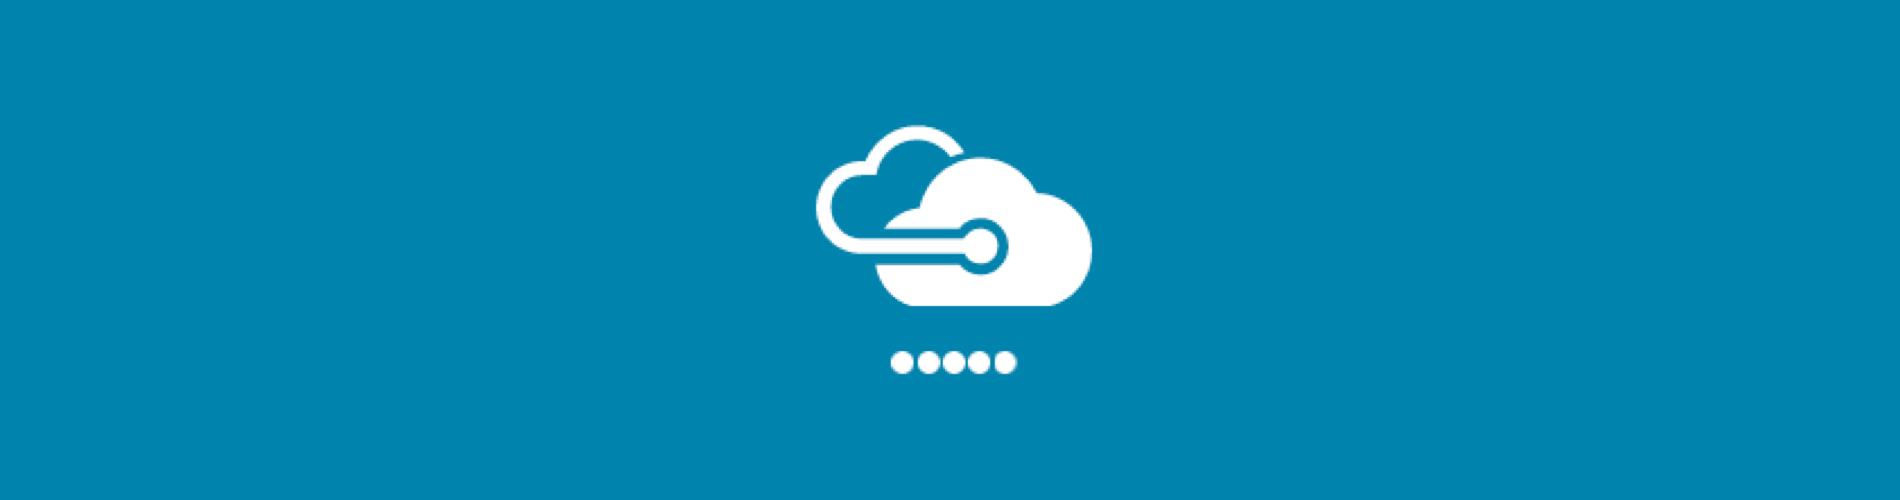 Azure Cloud Onramp feature image